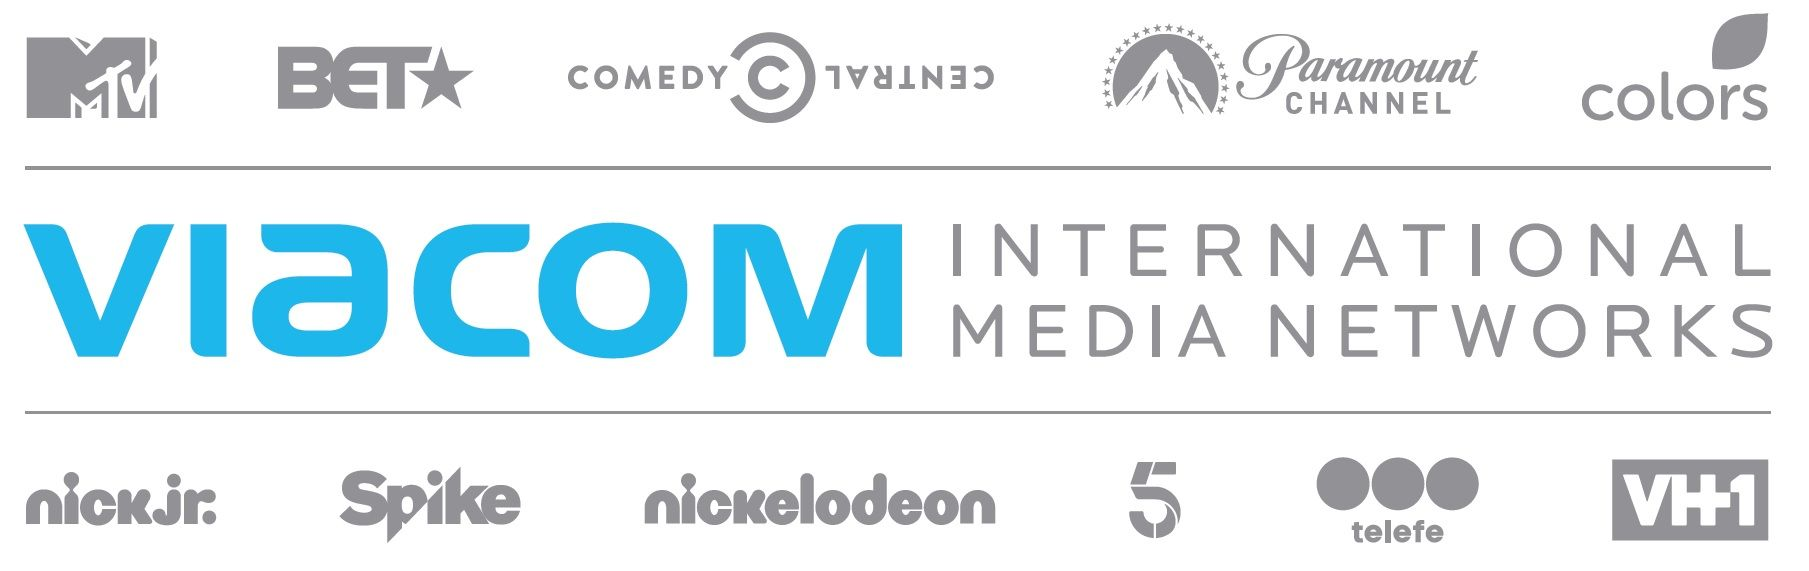 Image result for Viacom International Media Networks logo